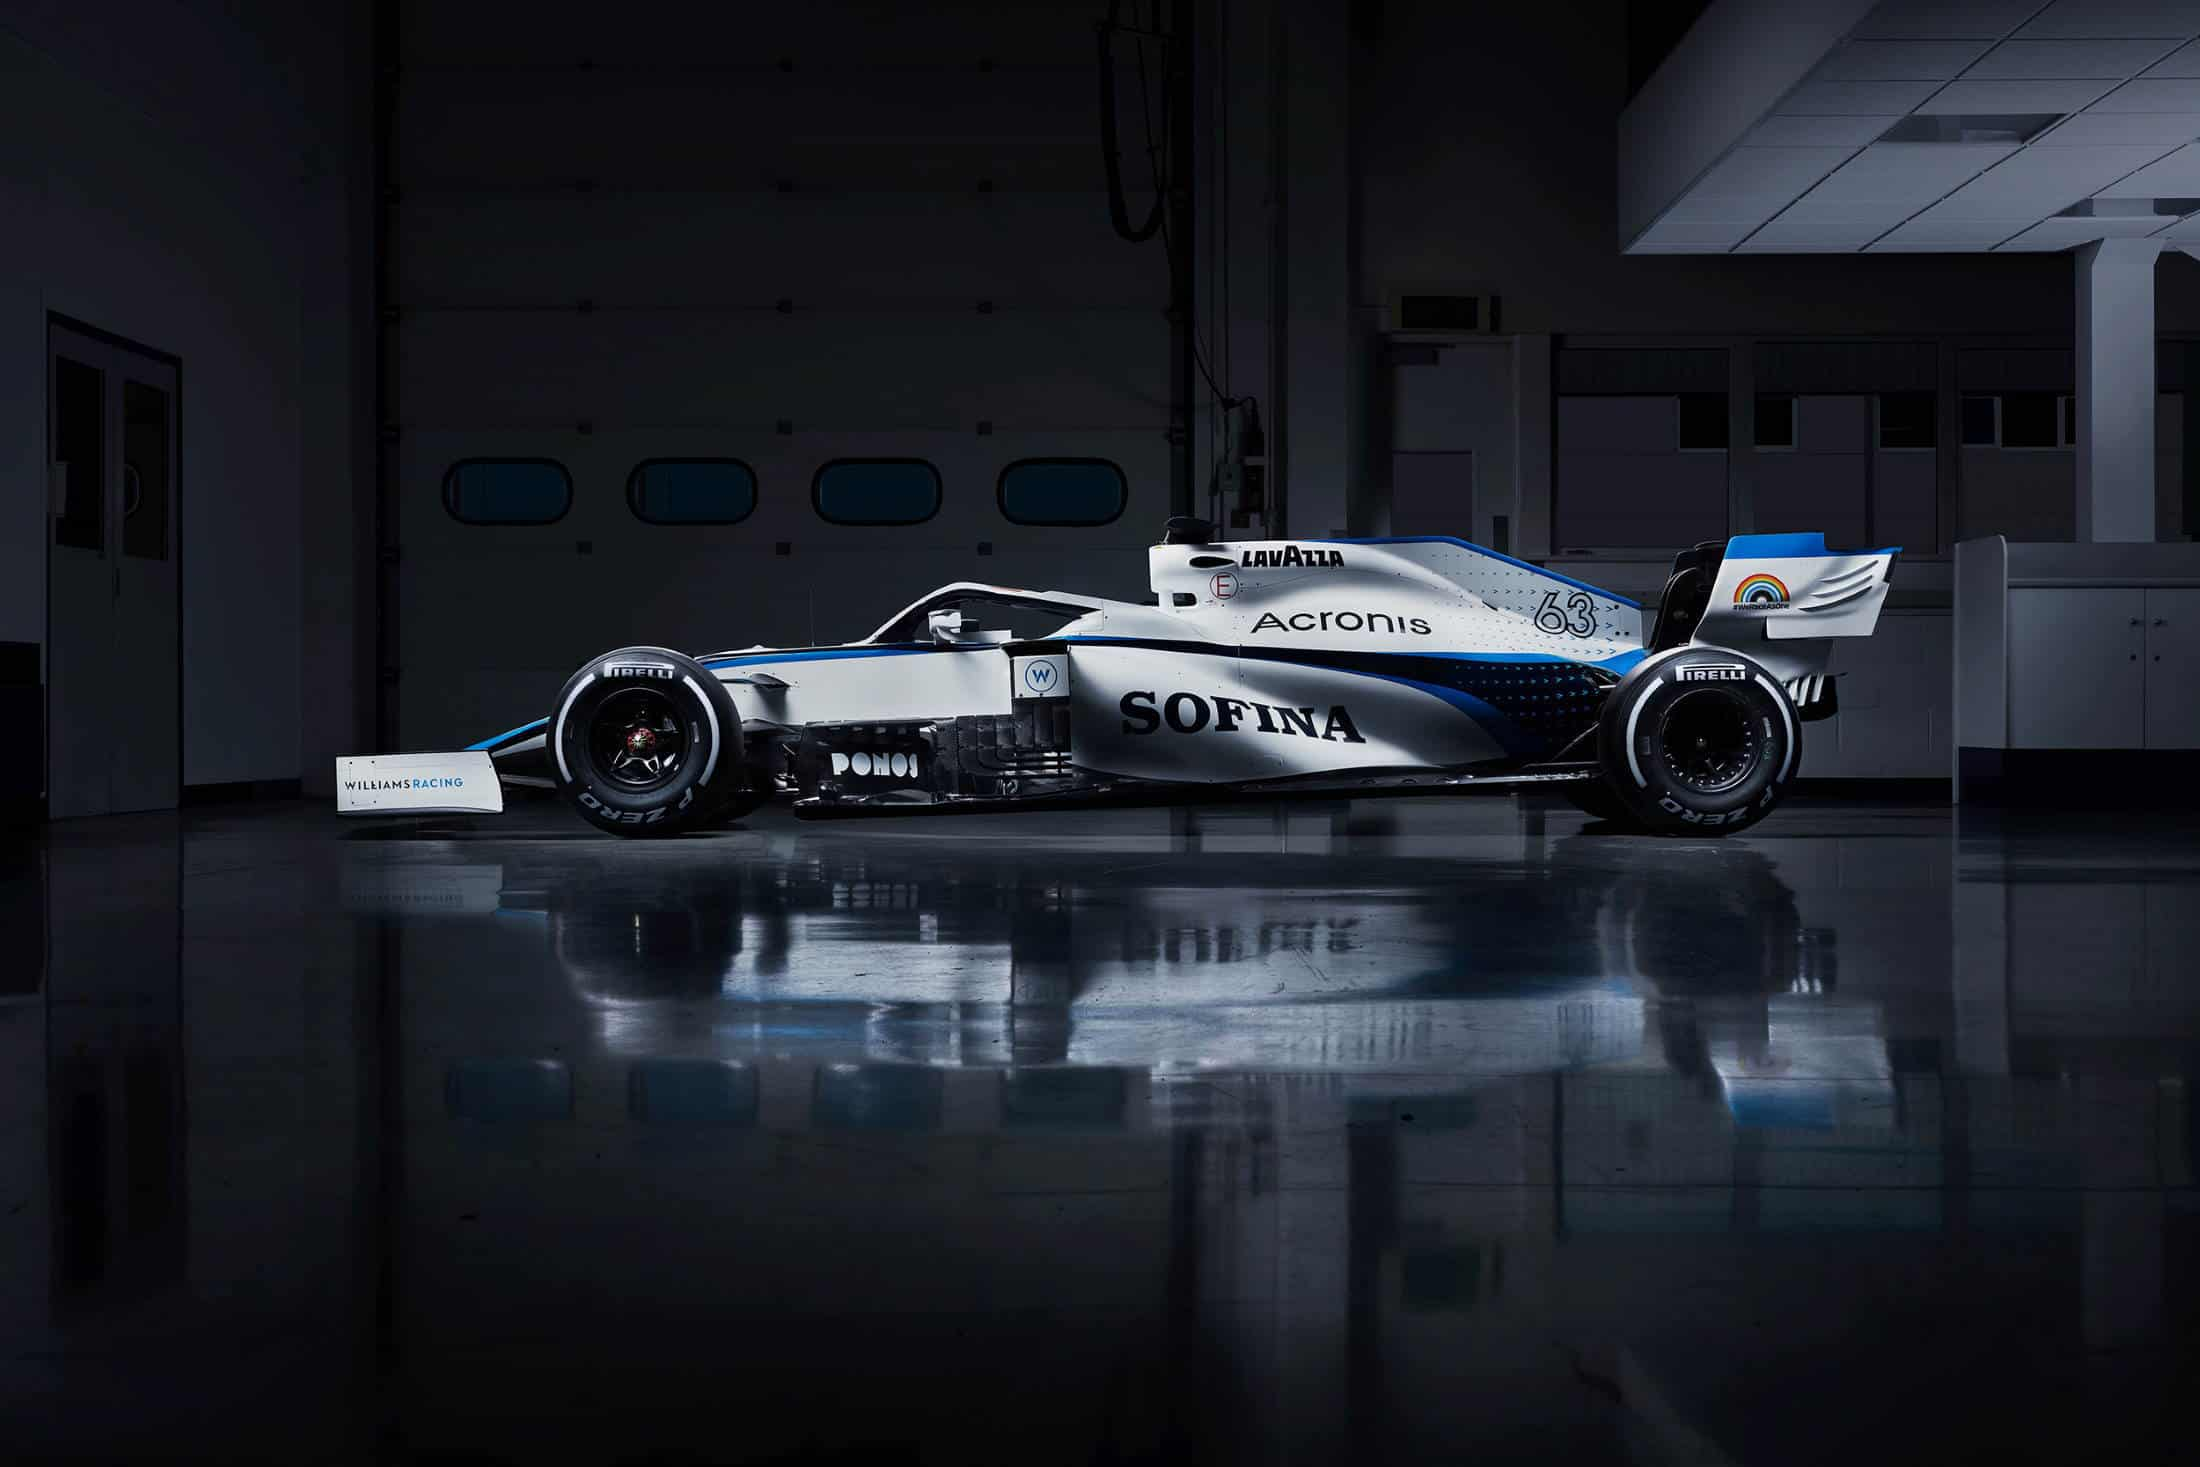 New 2020 F1 Williams livery without ROKit Photo Williams Twitter